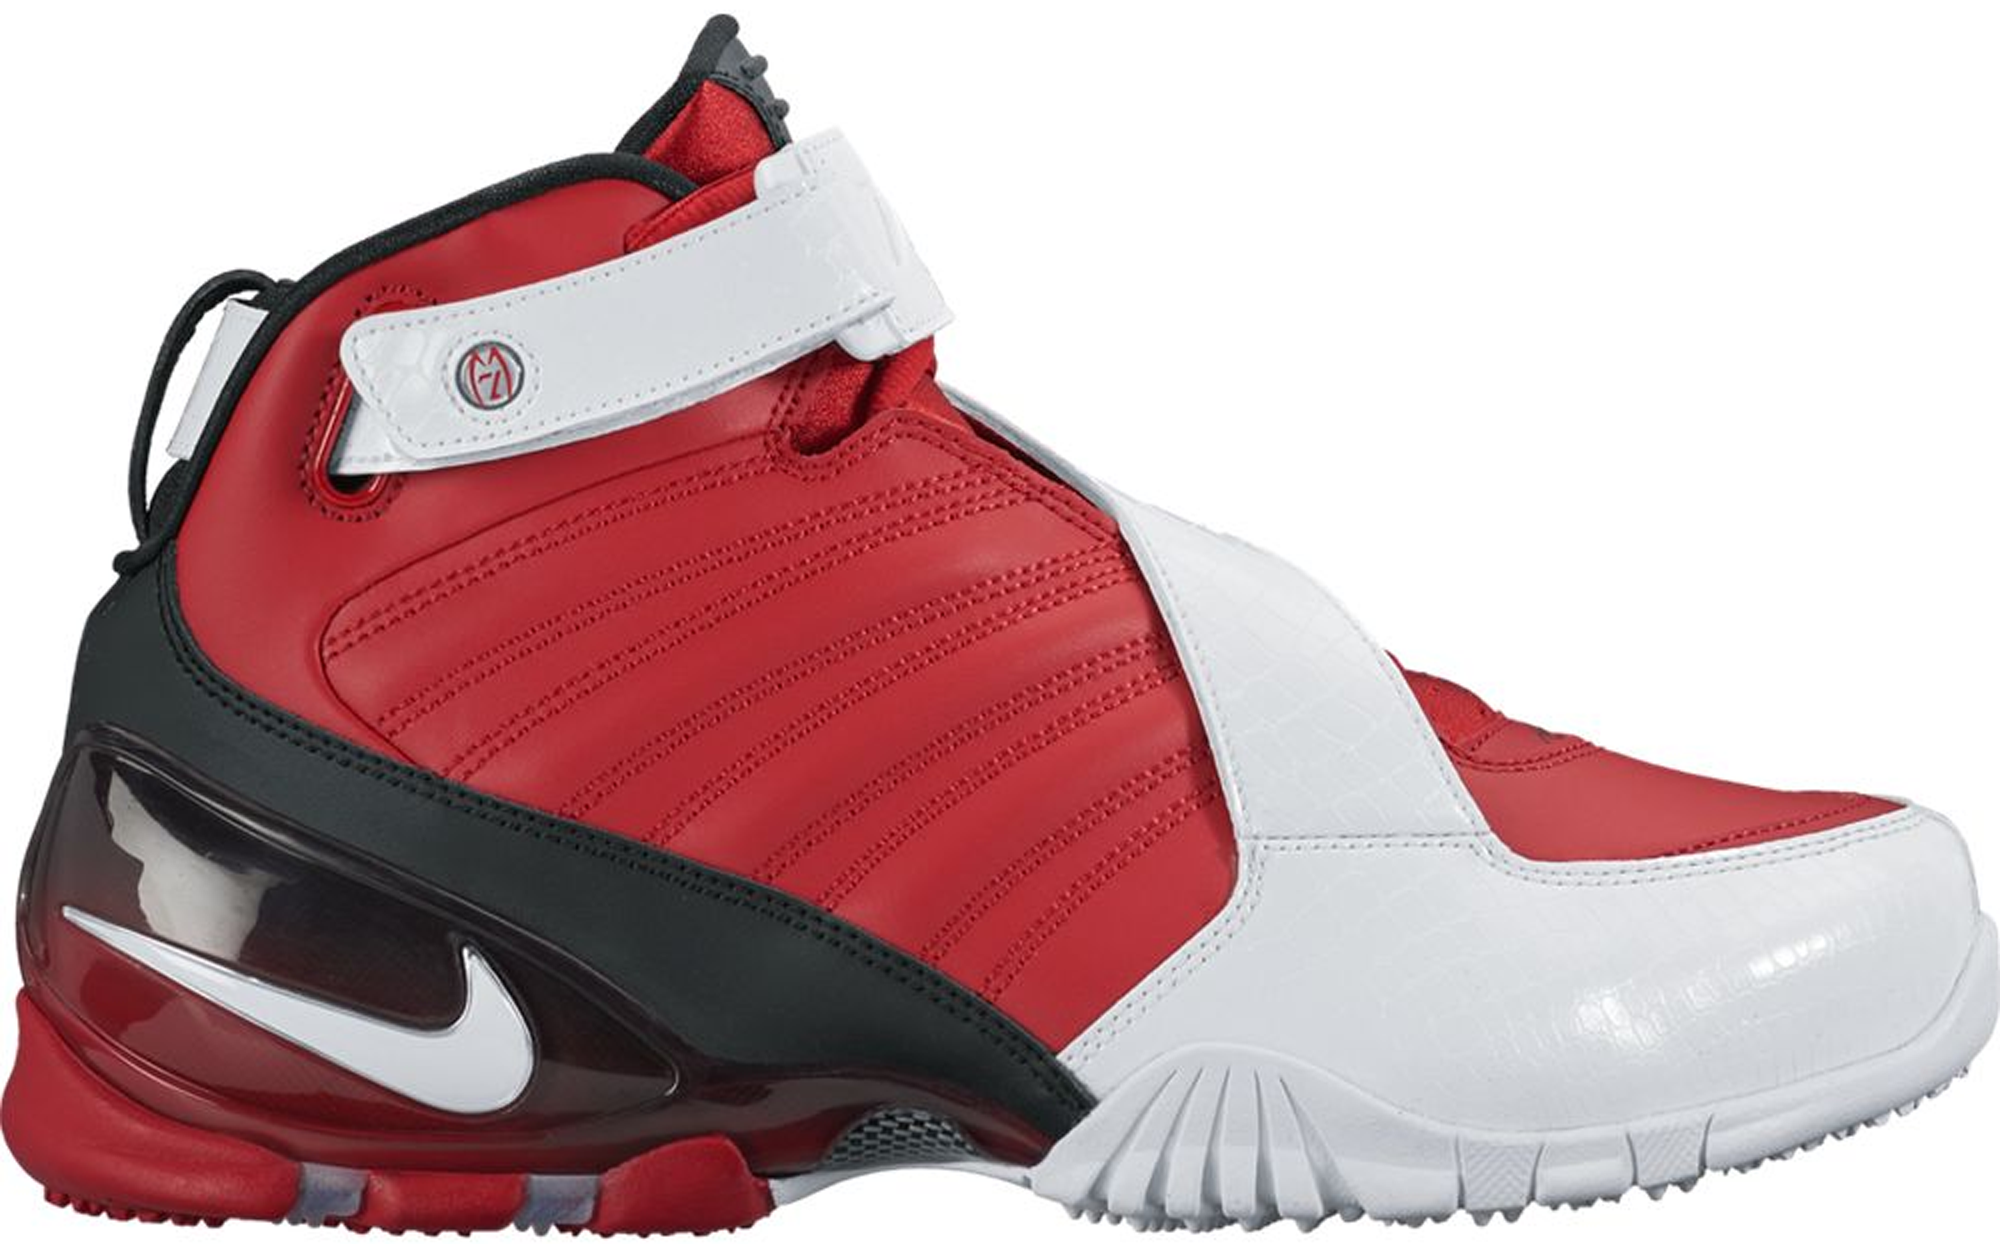 Air Zoom Vick 3 Red (2016)